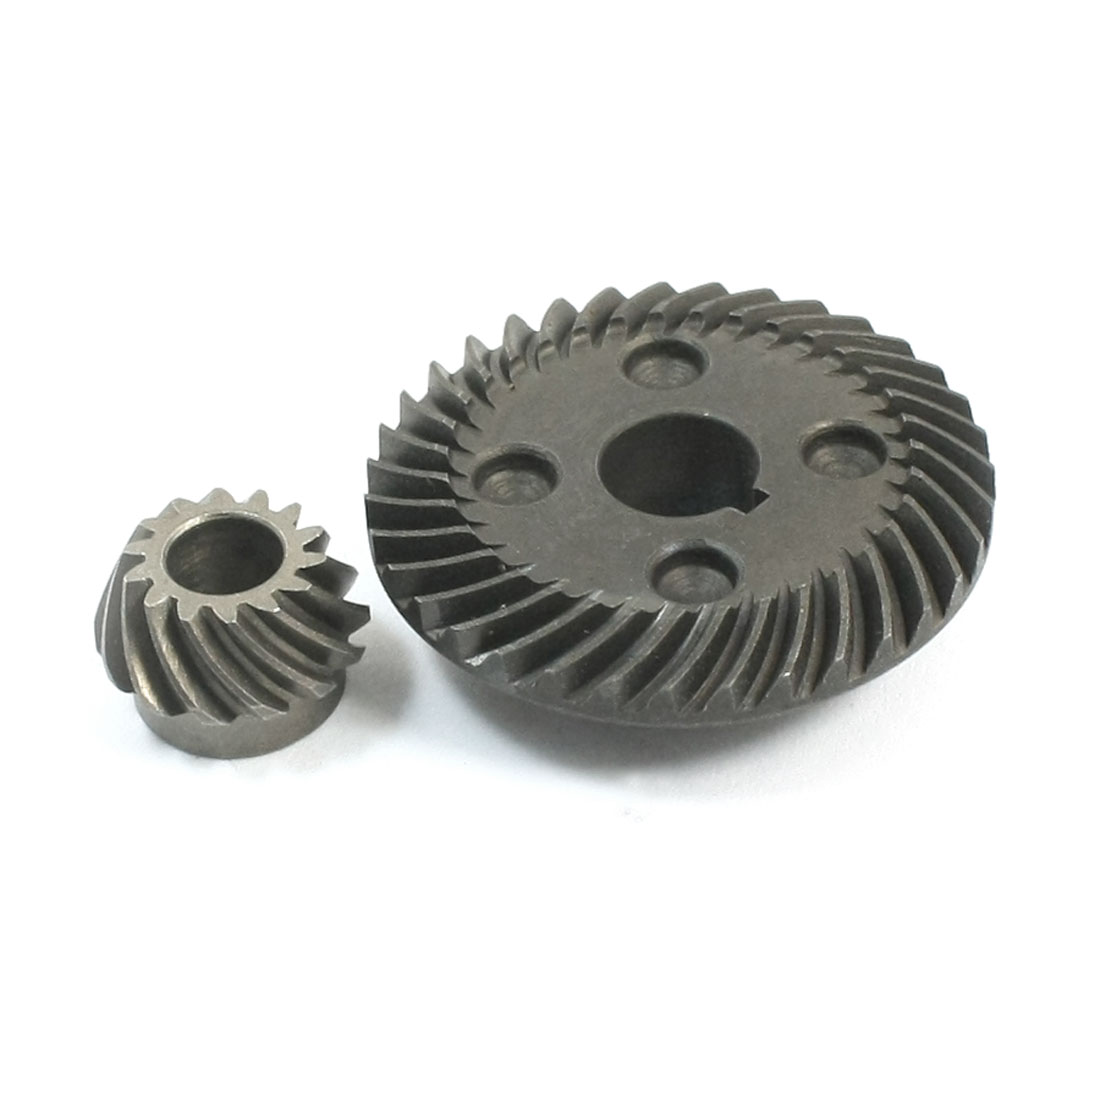 Electric Tool Fittings Spiral Bevel Gear for Hitachi G10SF3 Angle Grinder